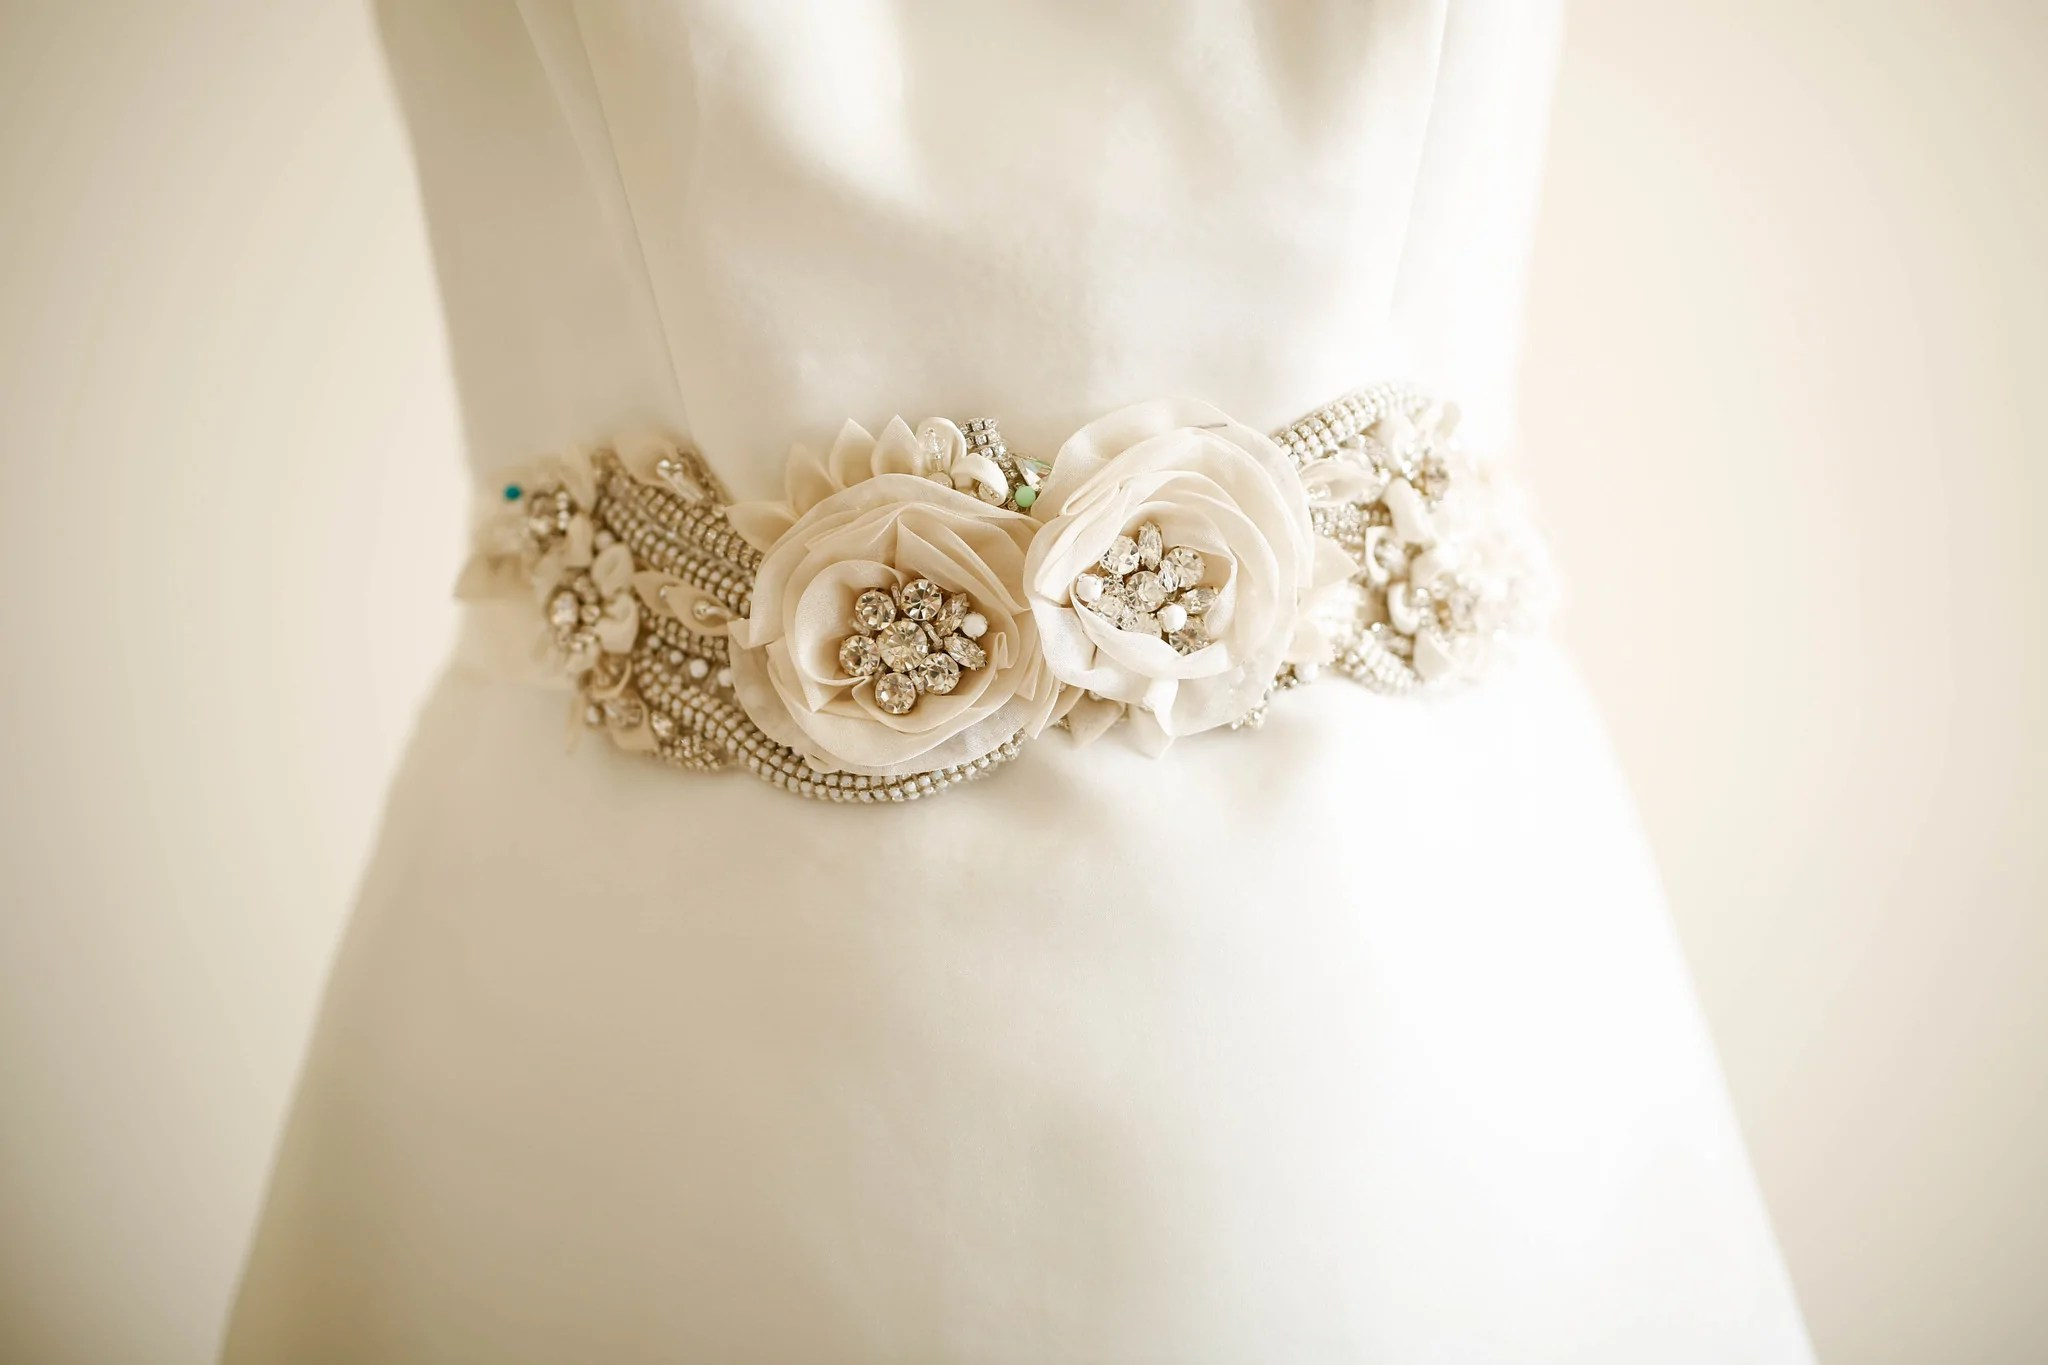 wholesale bridal belts and sashes s29 belt for wedding dress Bridal belts and sashes S29